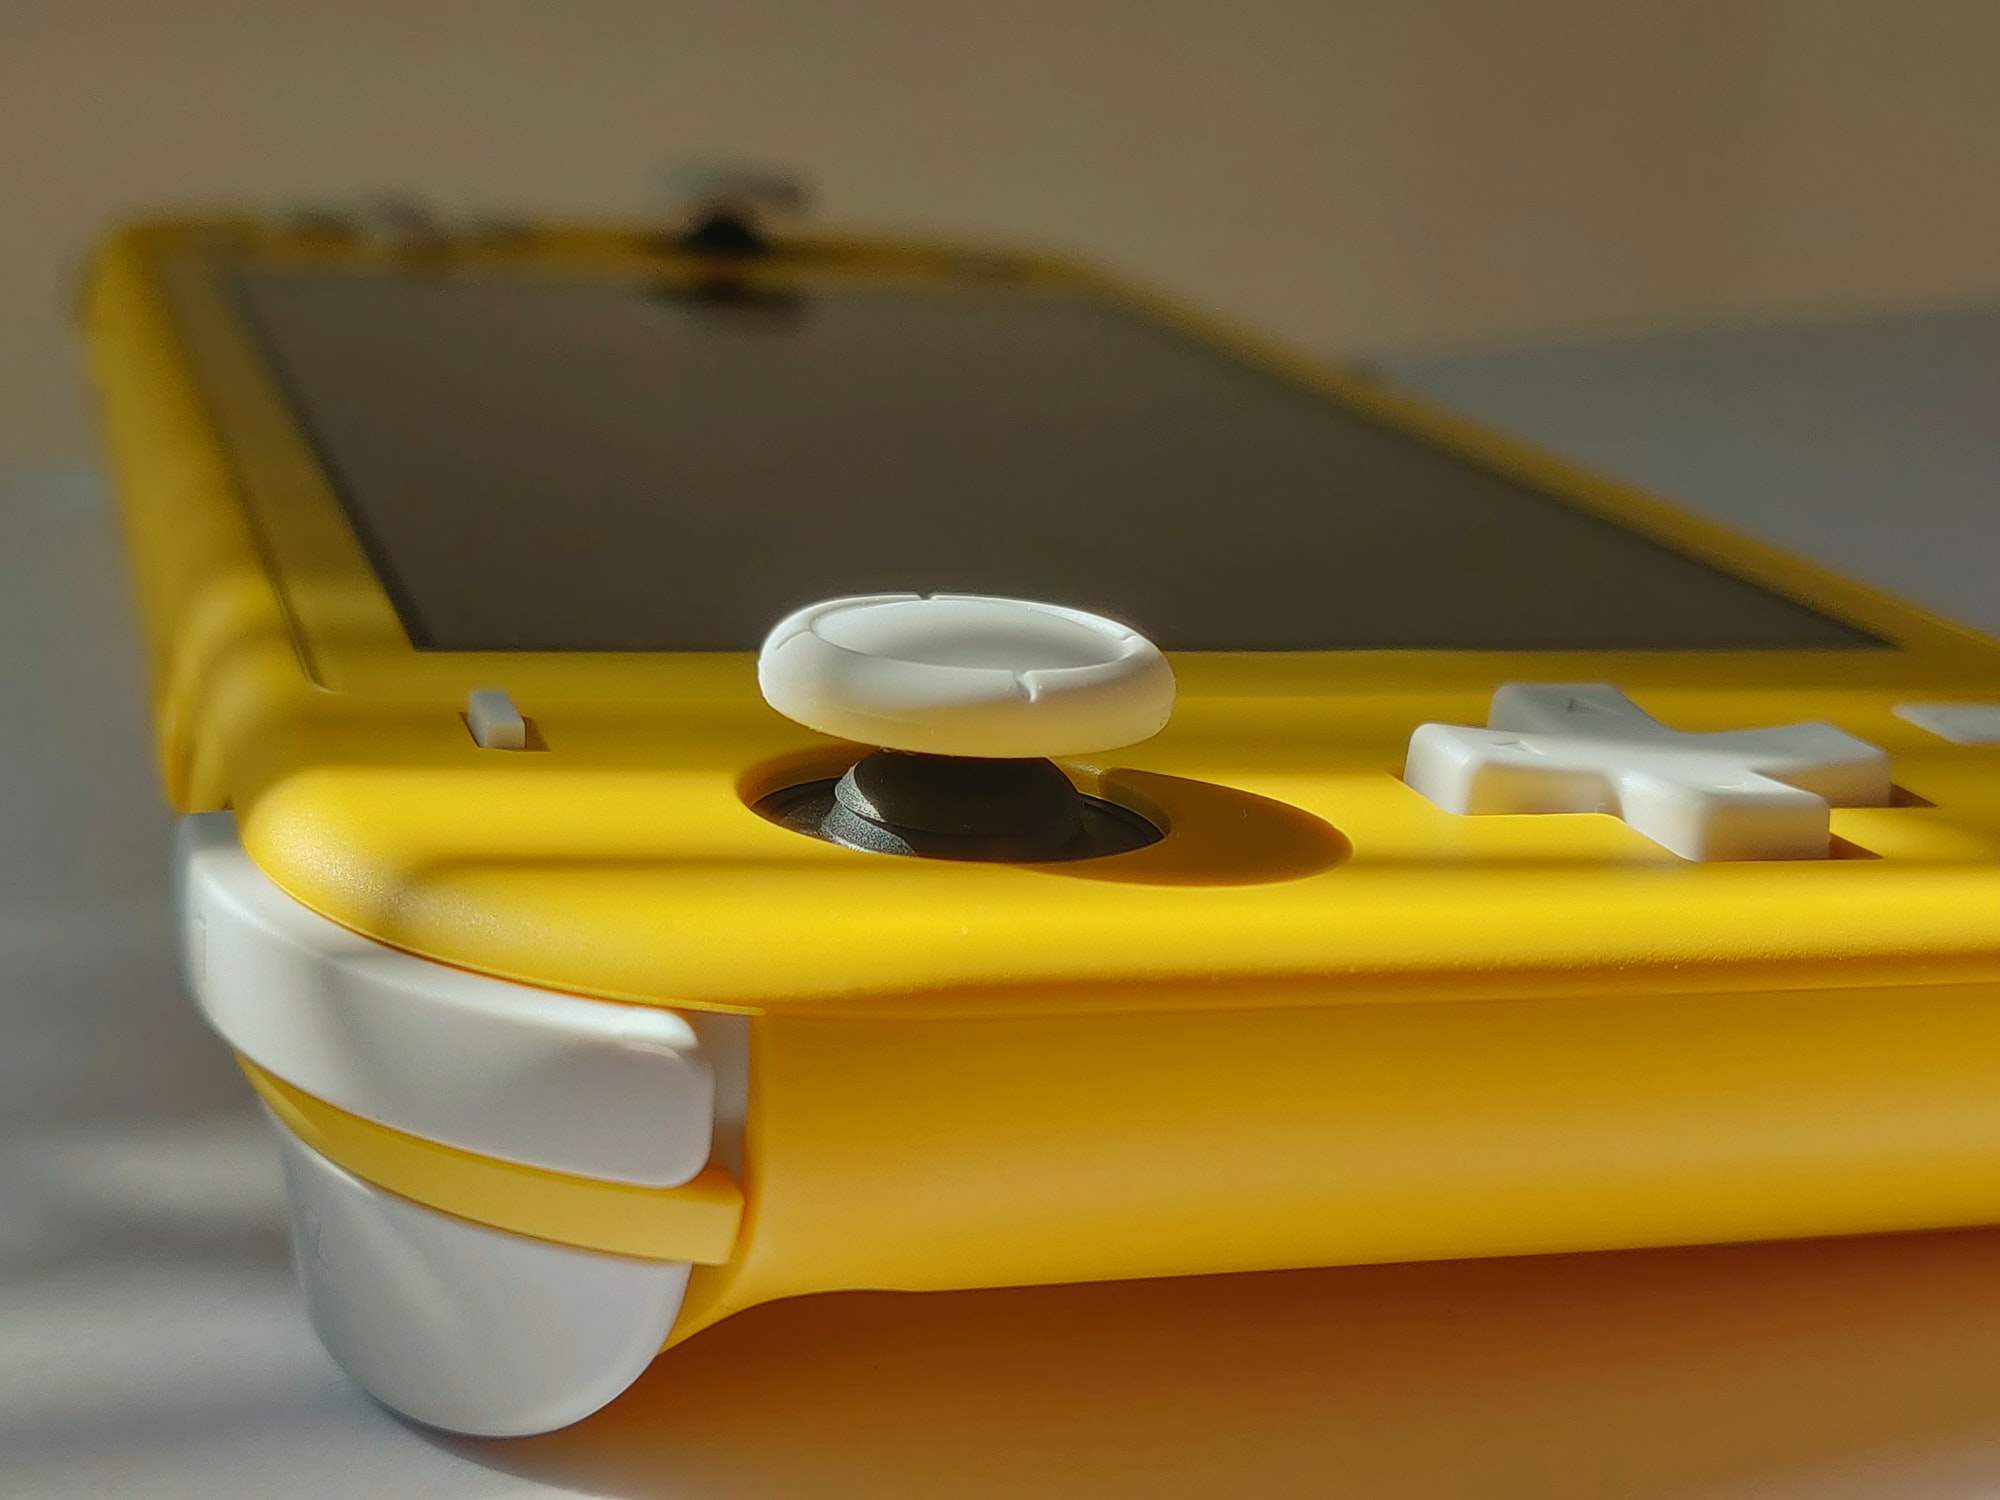 The Nintendo Switch Lite JoyCon drift problem is real